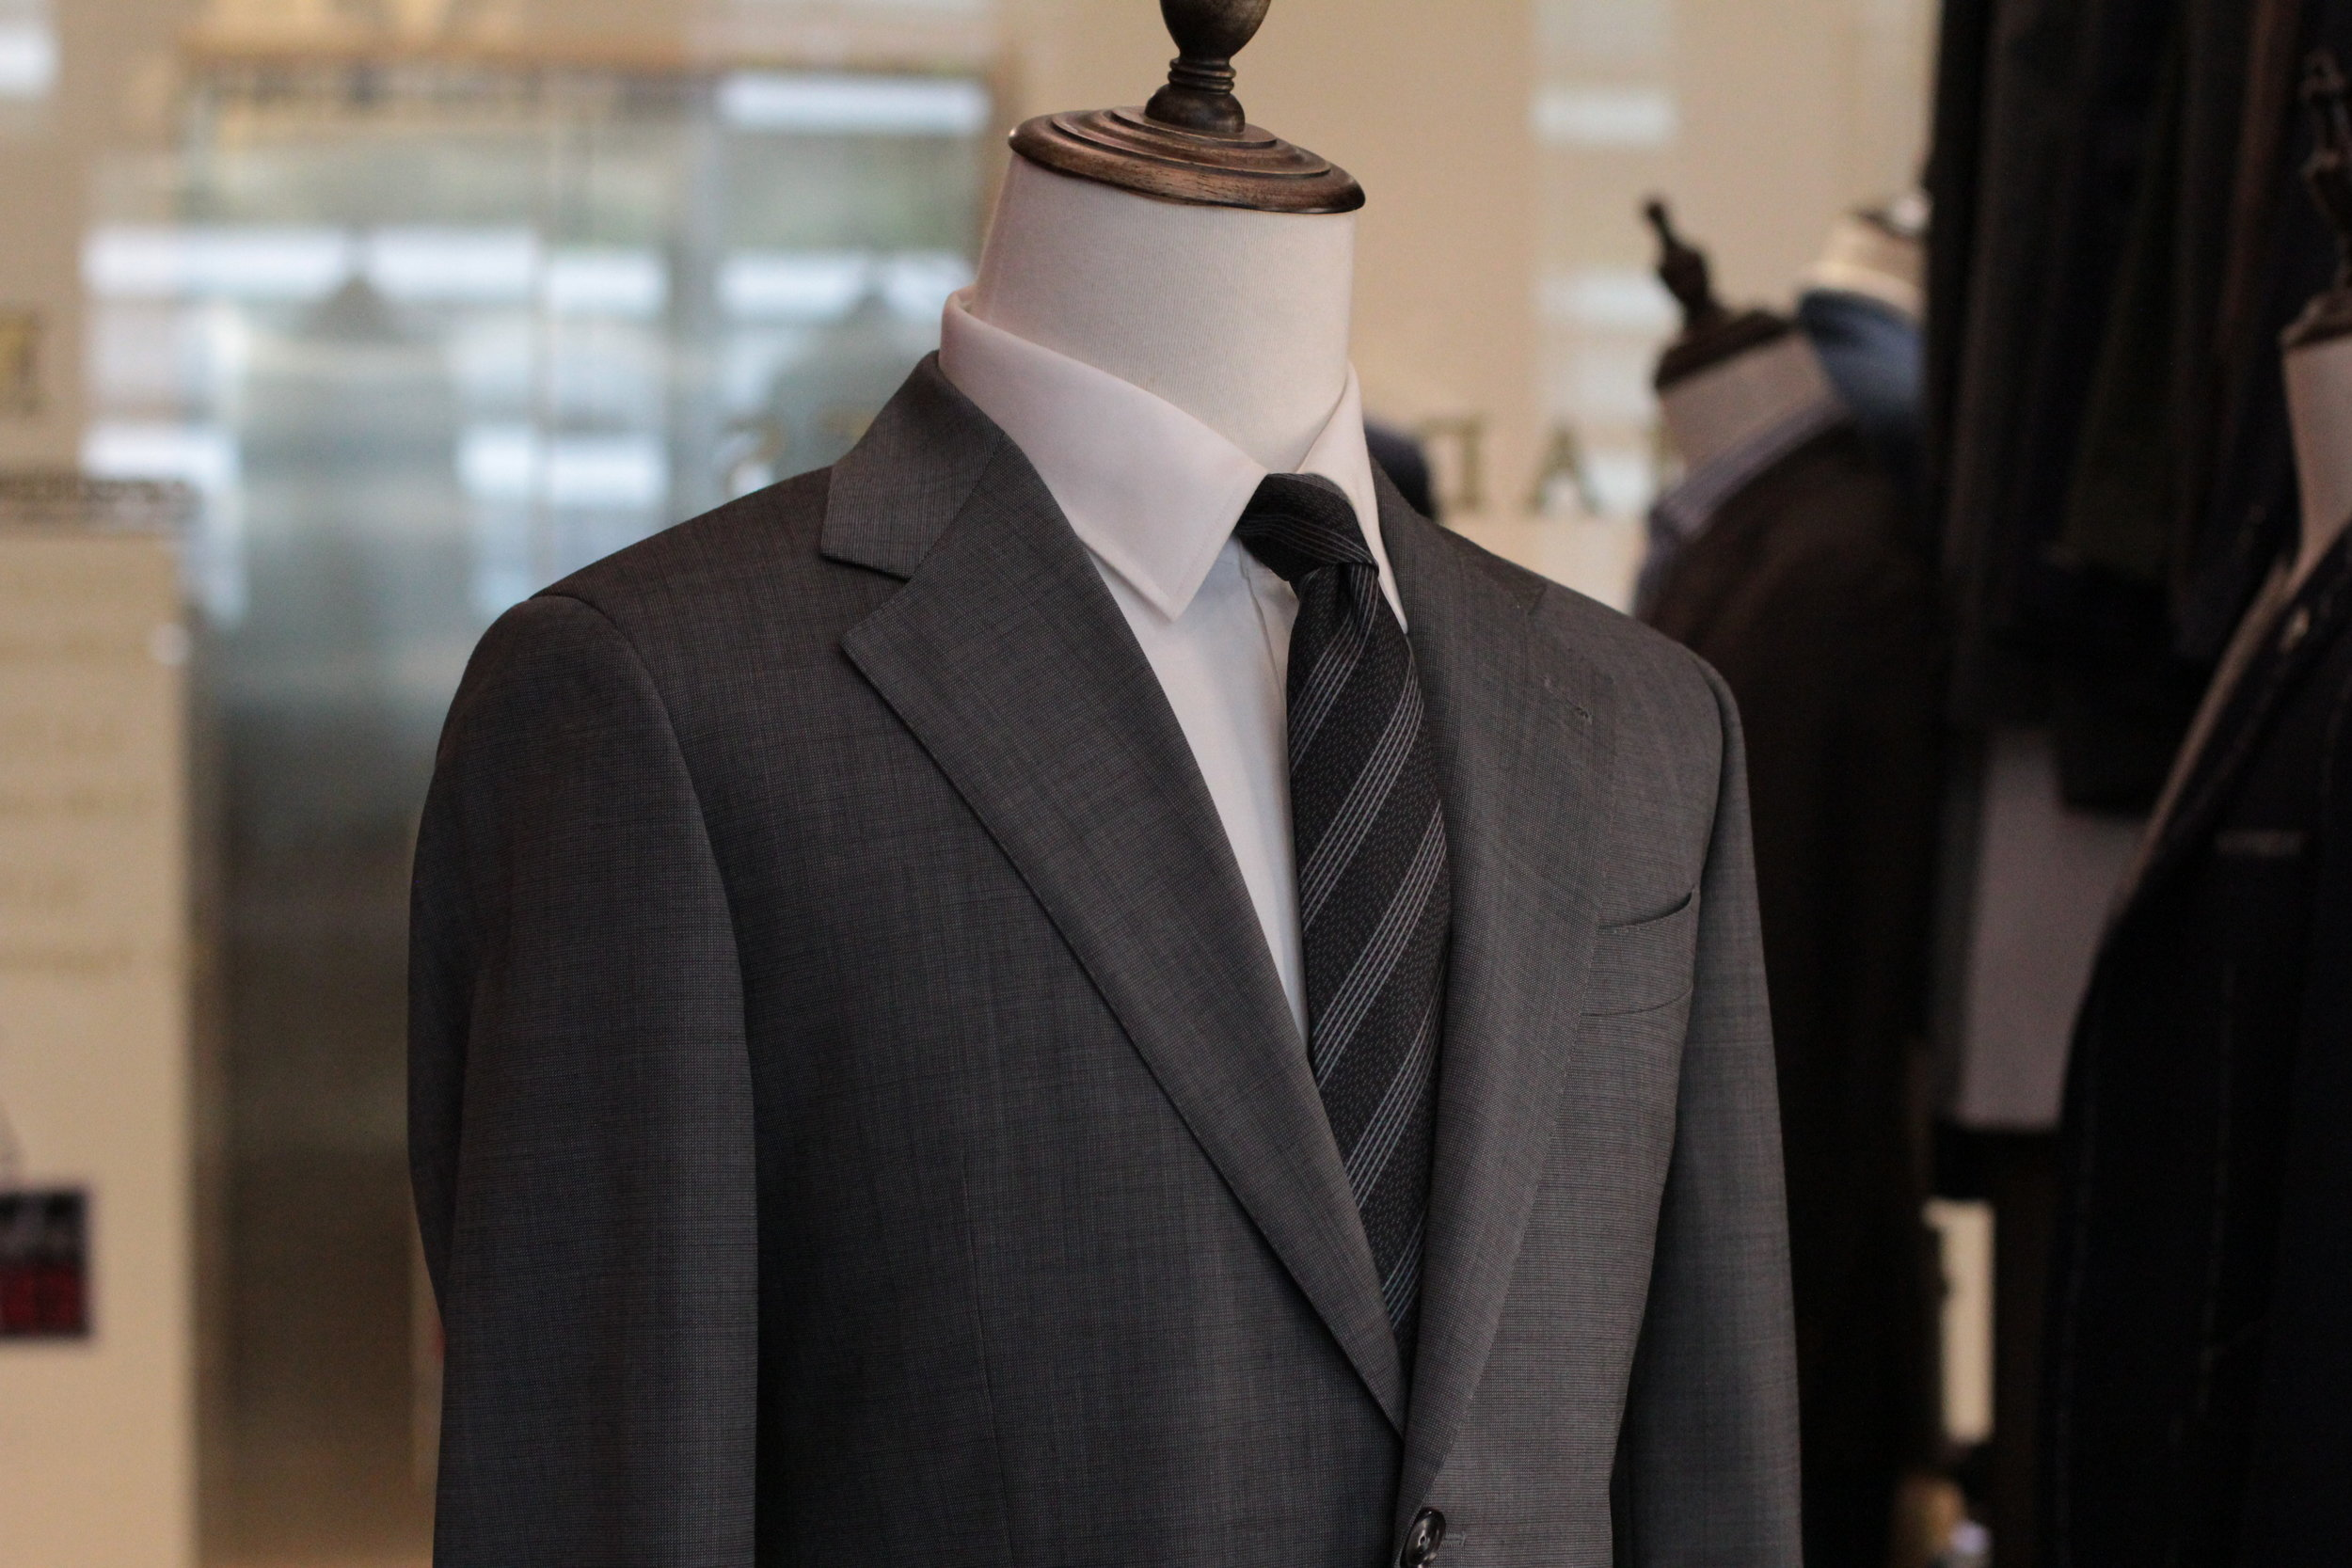 Mr Barbera Made Suits | Made to Measure Suits |Bespoke Singapore Tailor STYLBIELLA Lining Pattern notched lapel.JPG